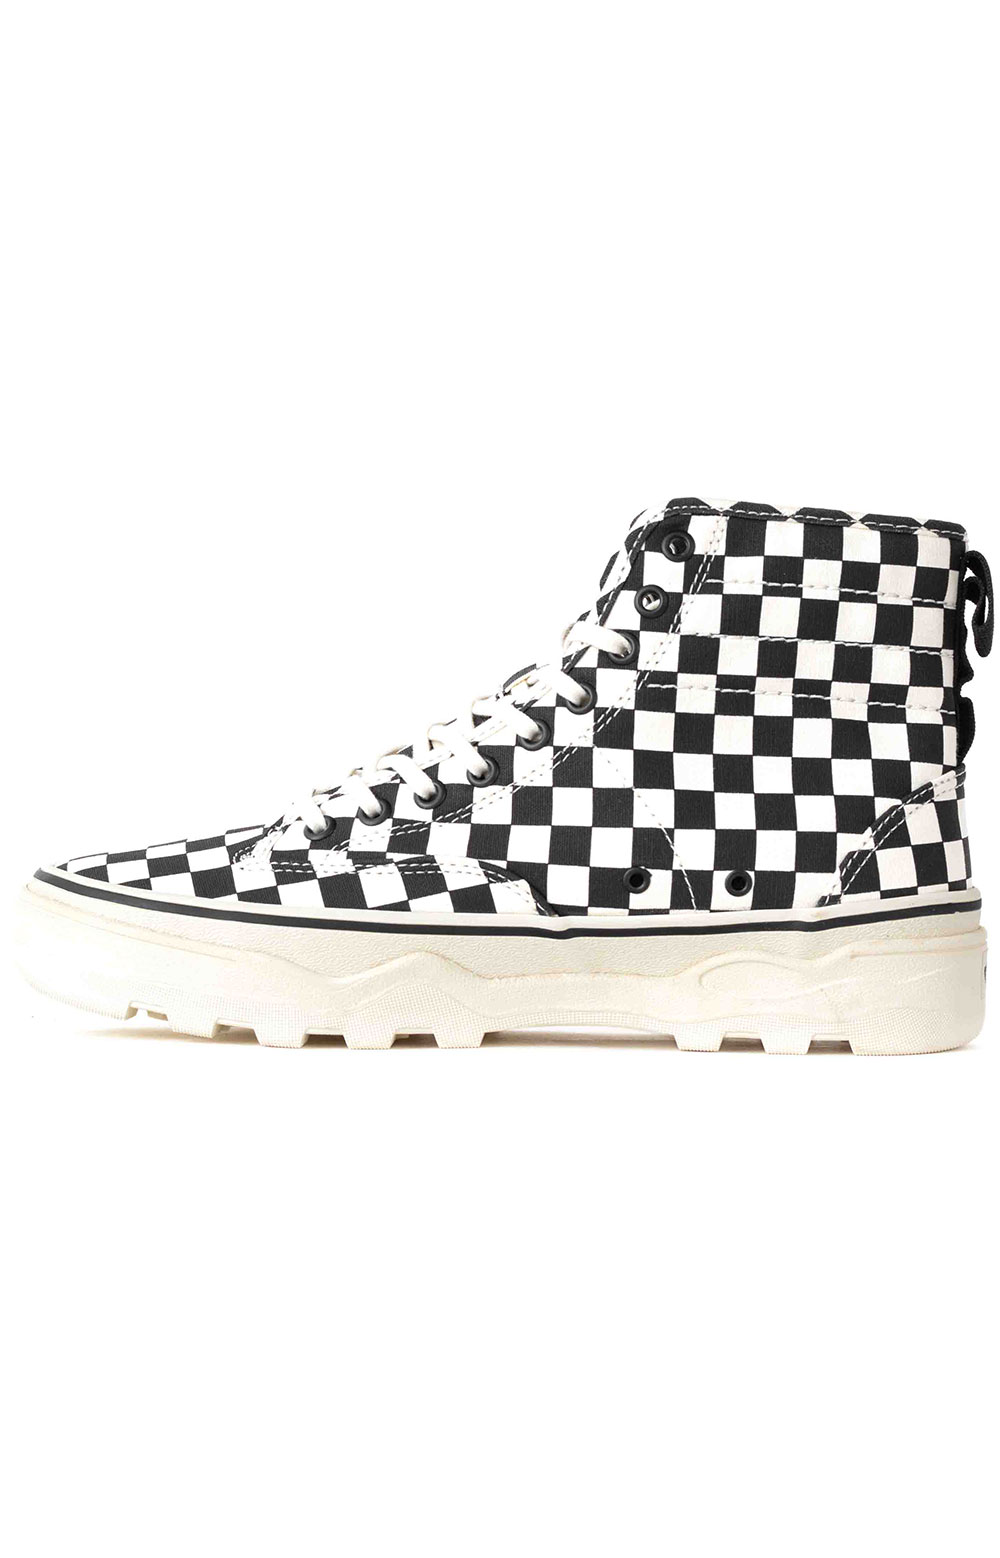 (4P3kTUY) Canvas Sentry WC Shoe - Checkerboard 4